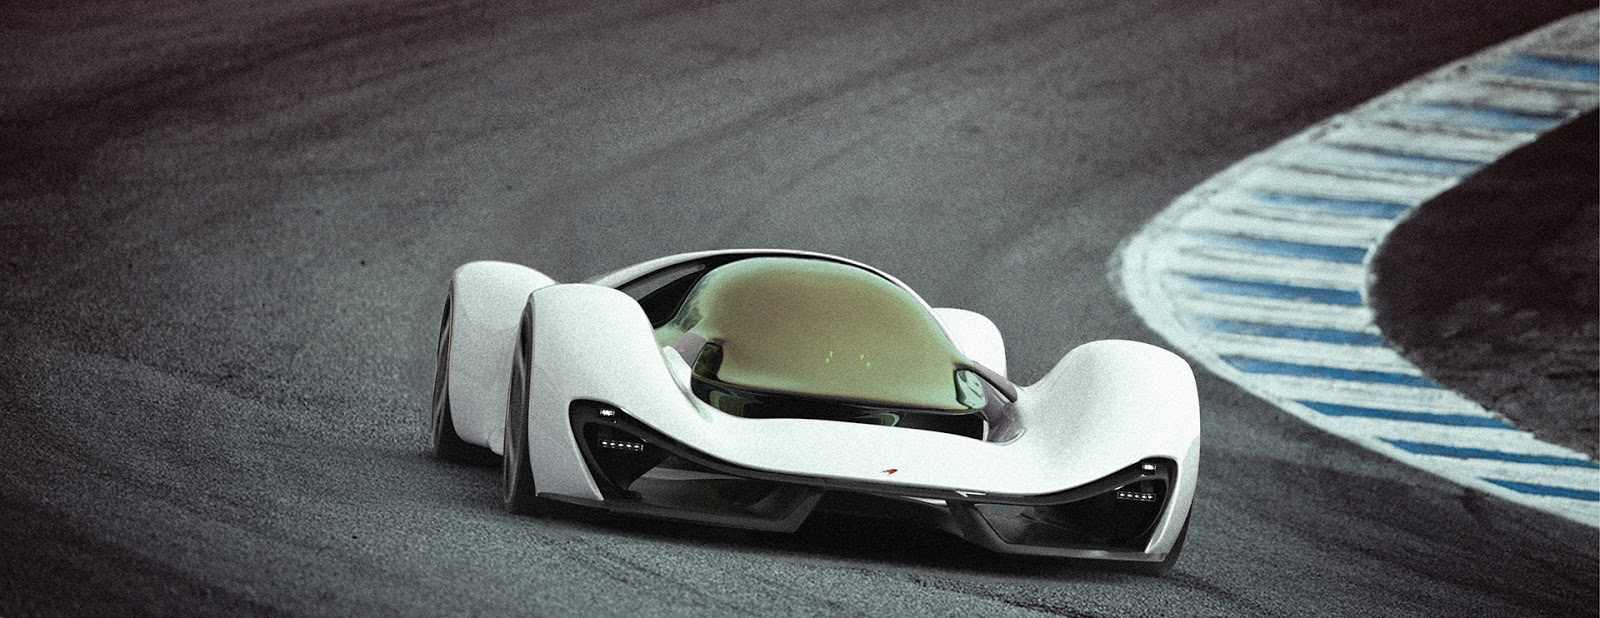 2020 Mclaren Single Seater Hypercar Study Is Out Of This